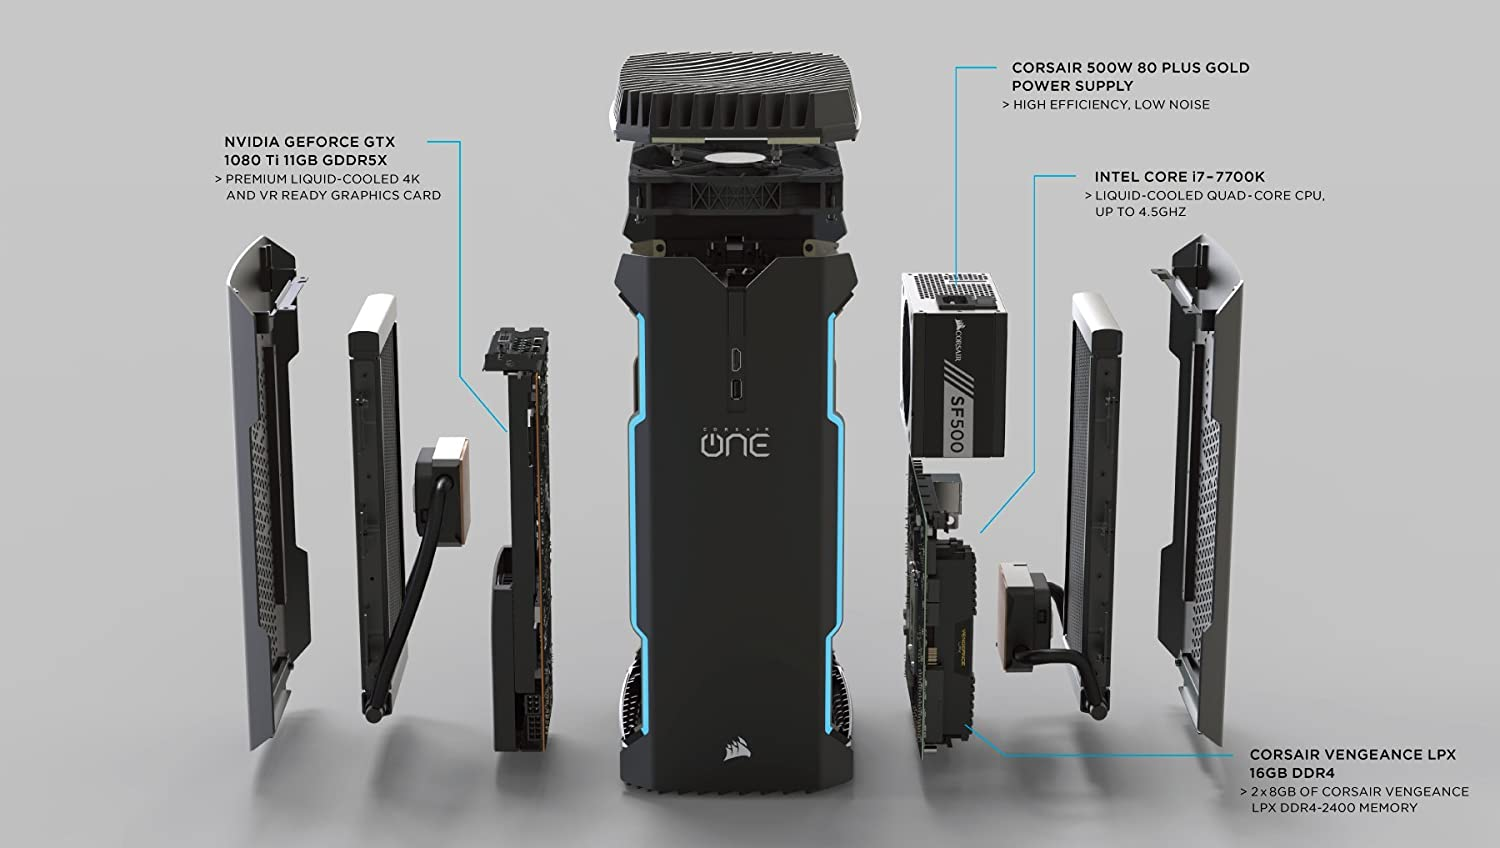 Towers CORSAIR ONE i140 Compact Gaming Desktop PC,i7-9700K